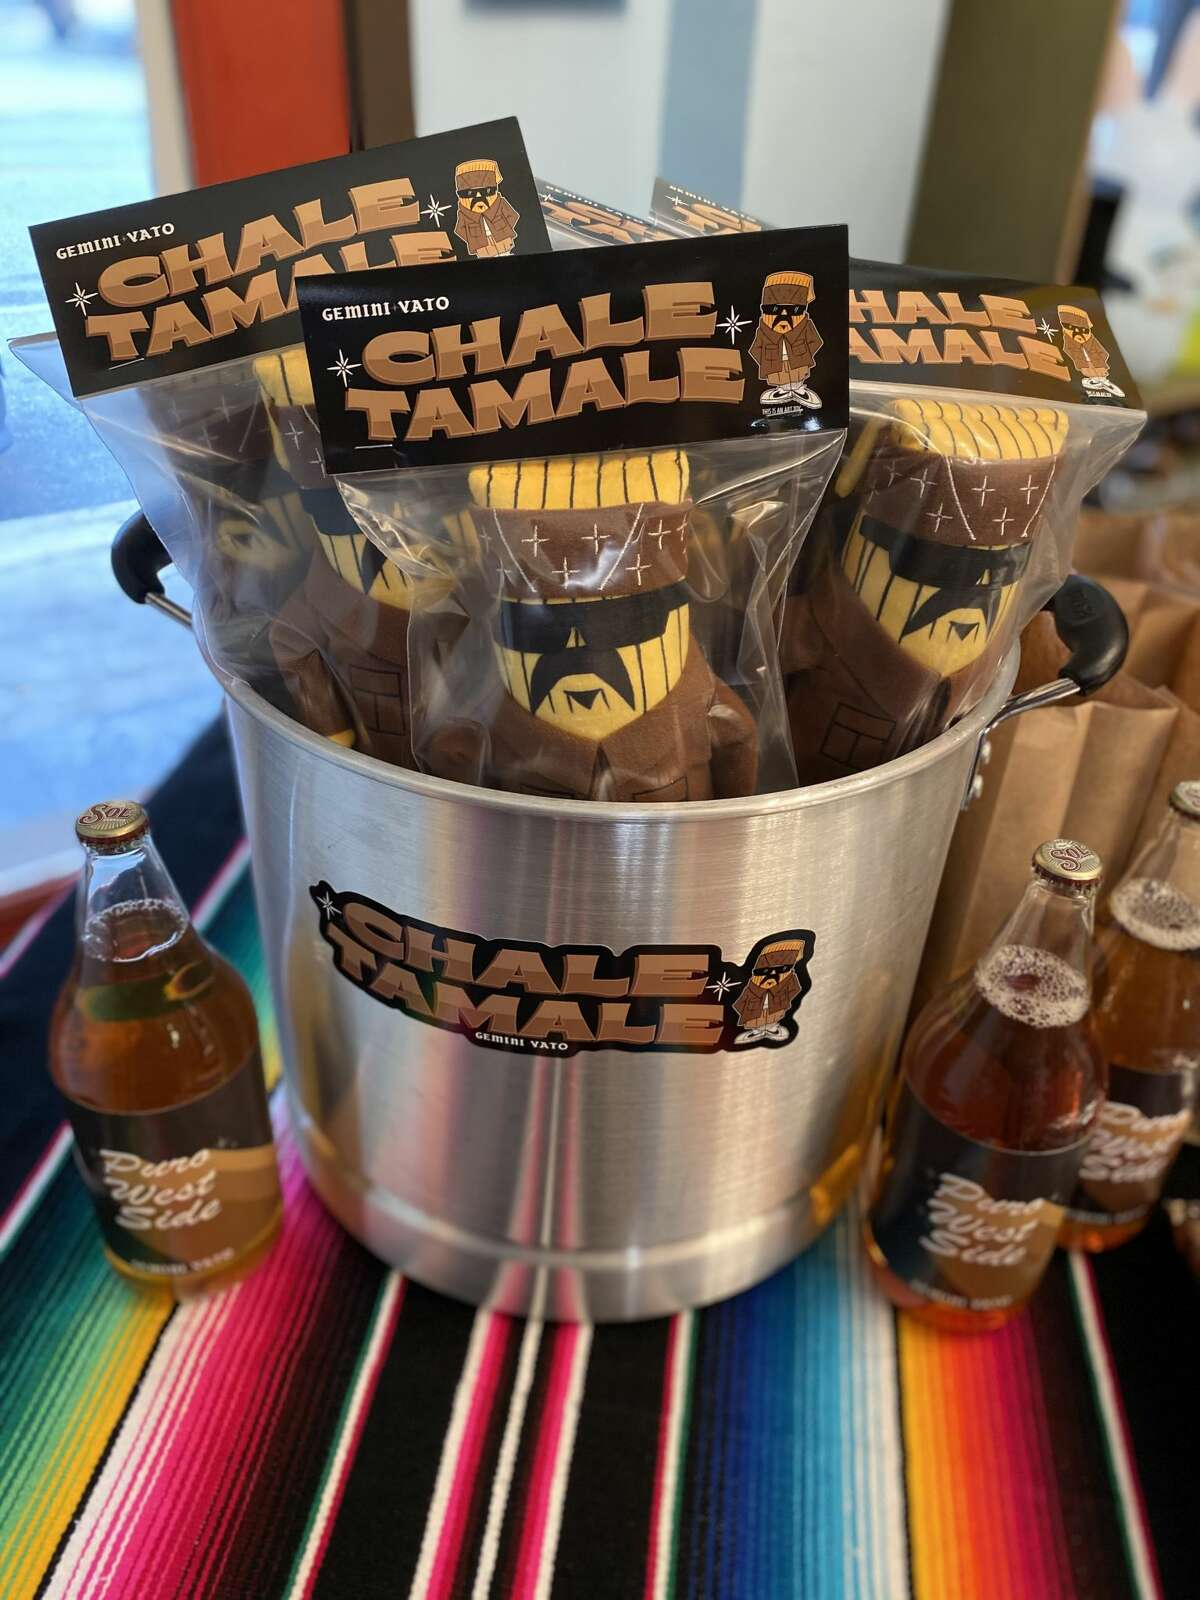 Photos from Chale Tamale's first pop-up release.